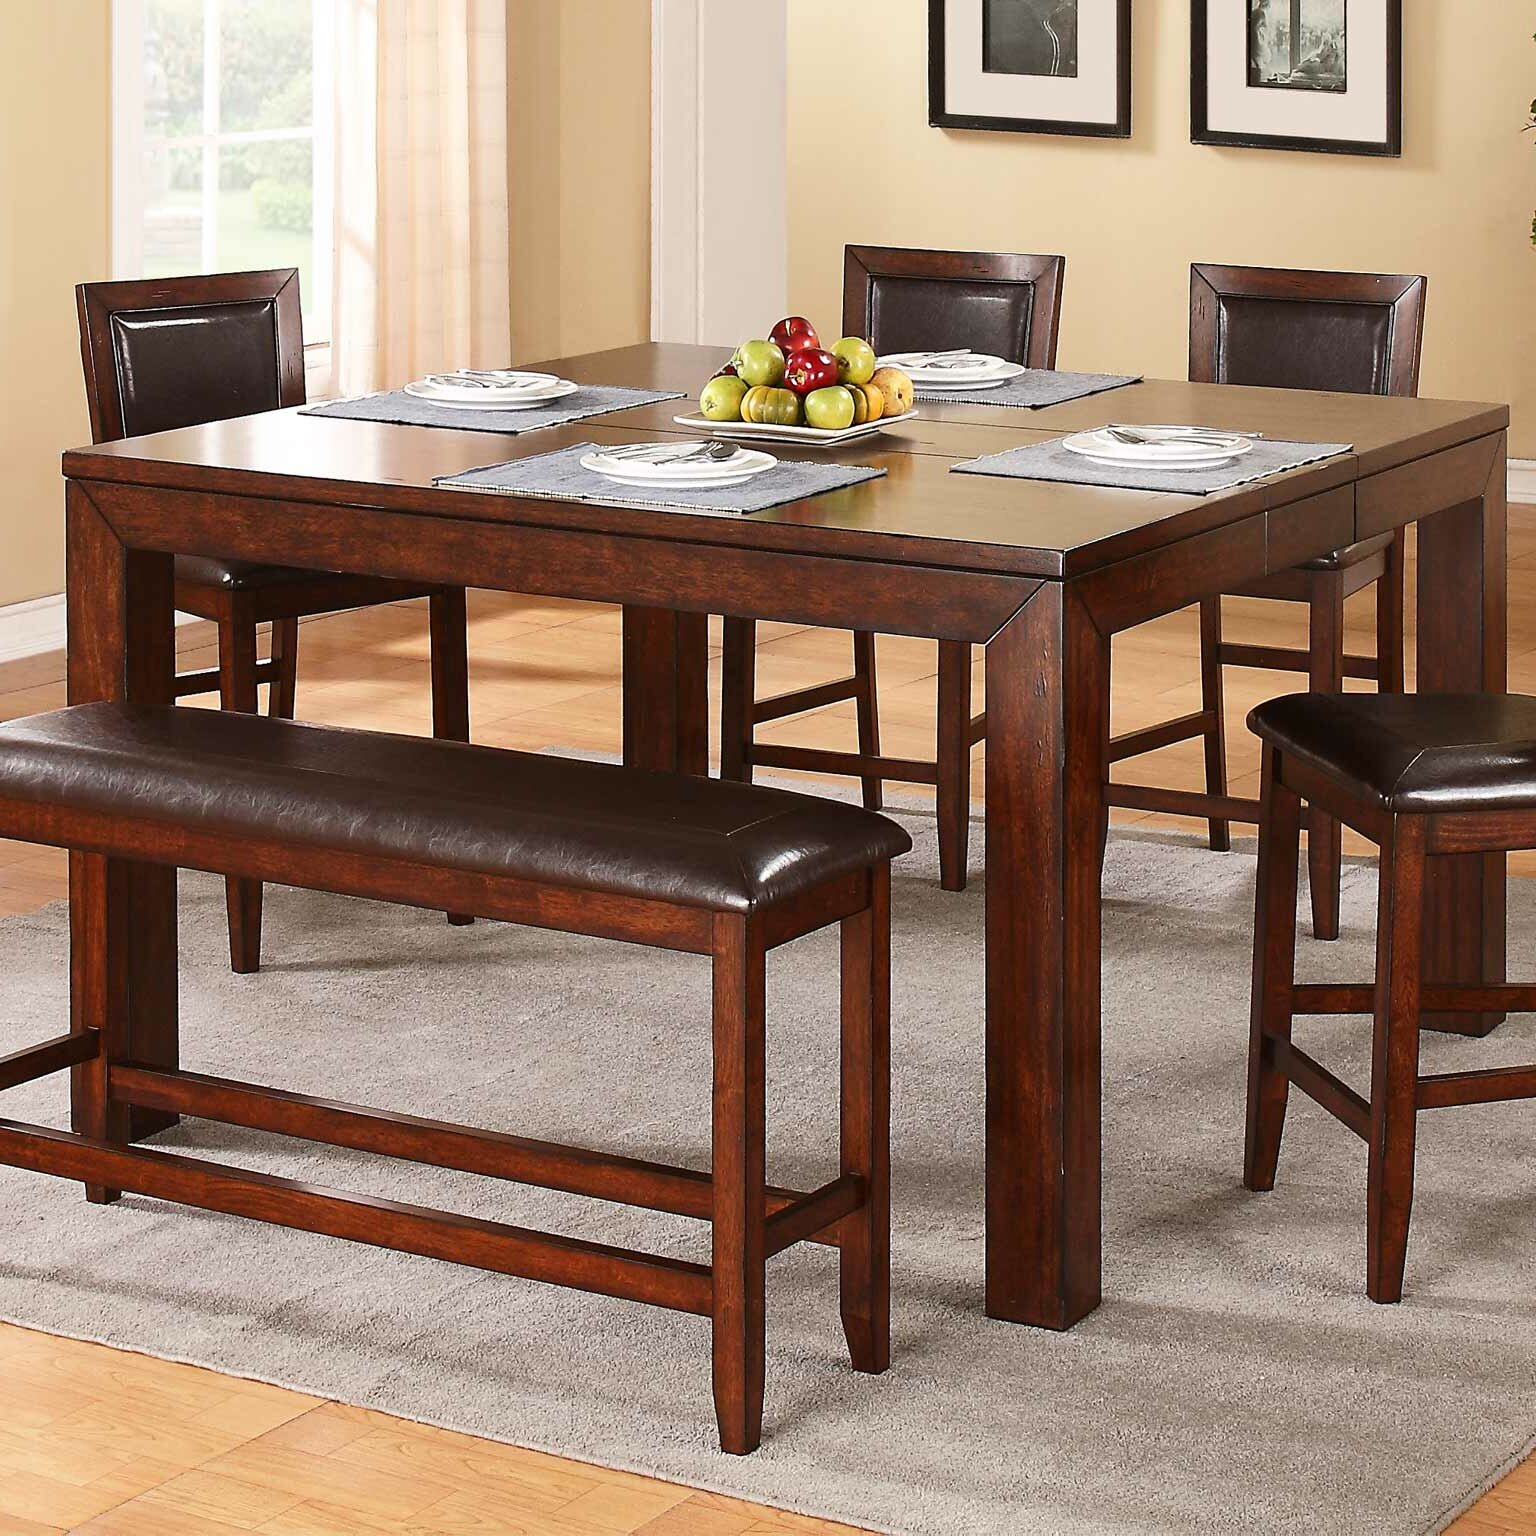 Red Barrel Studio Brookstonval Counter Height Extendable Dining Table Reviews Wayfair